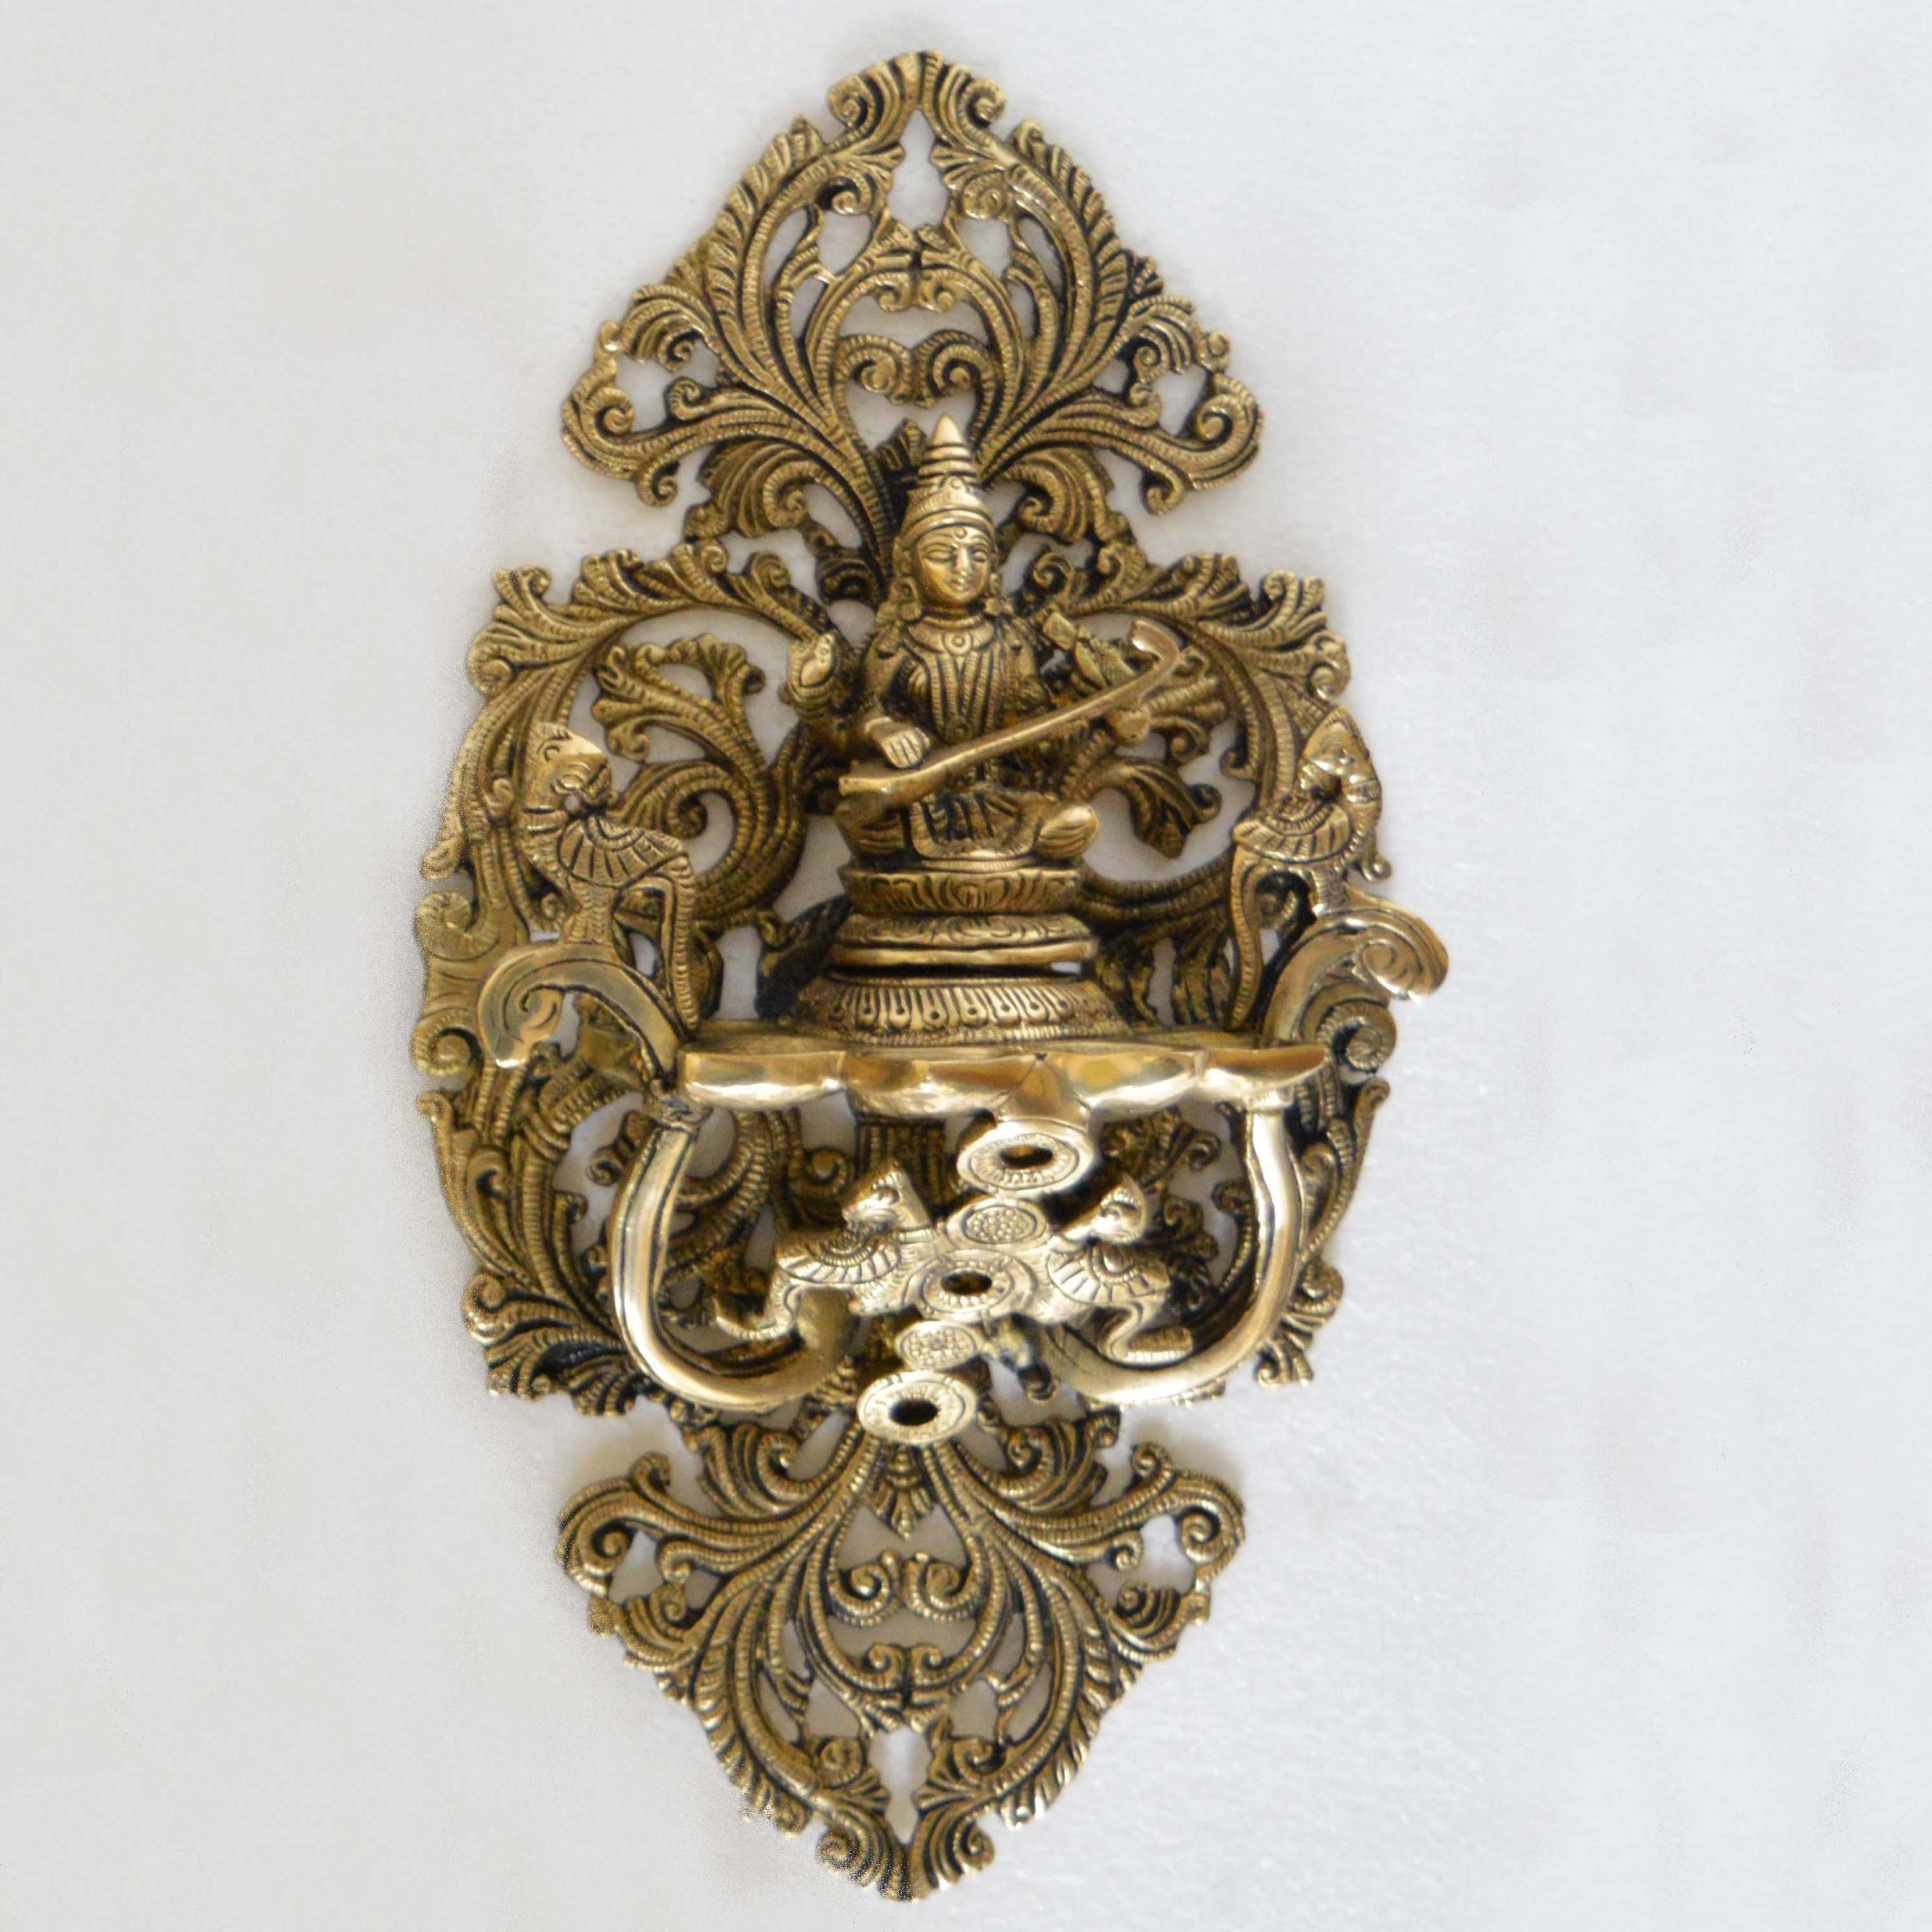 Goddess Saraswati Wall Plate Oil Deepak Or Diya with Unique Carving for Decor and Gifting Home decoration And wall décor